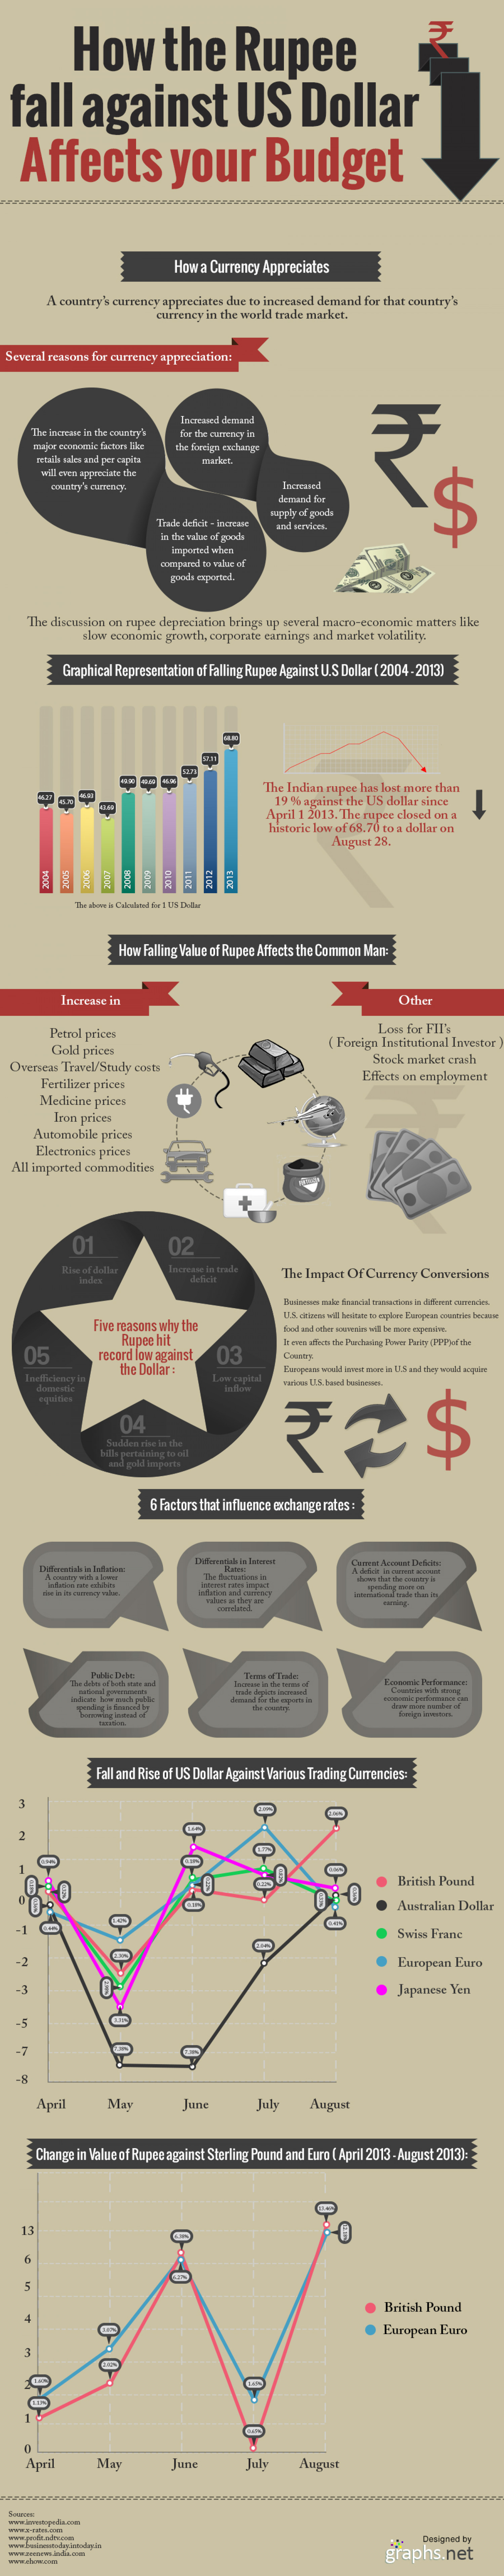 How rupee fall against US dollar affects your budget Infographic